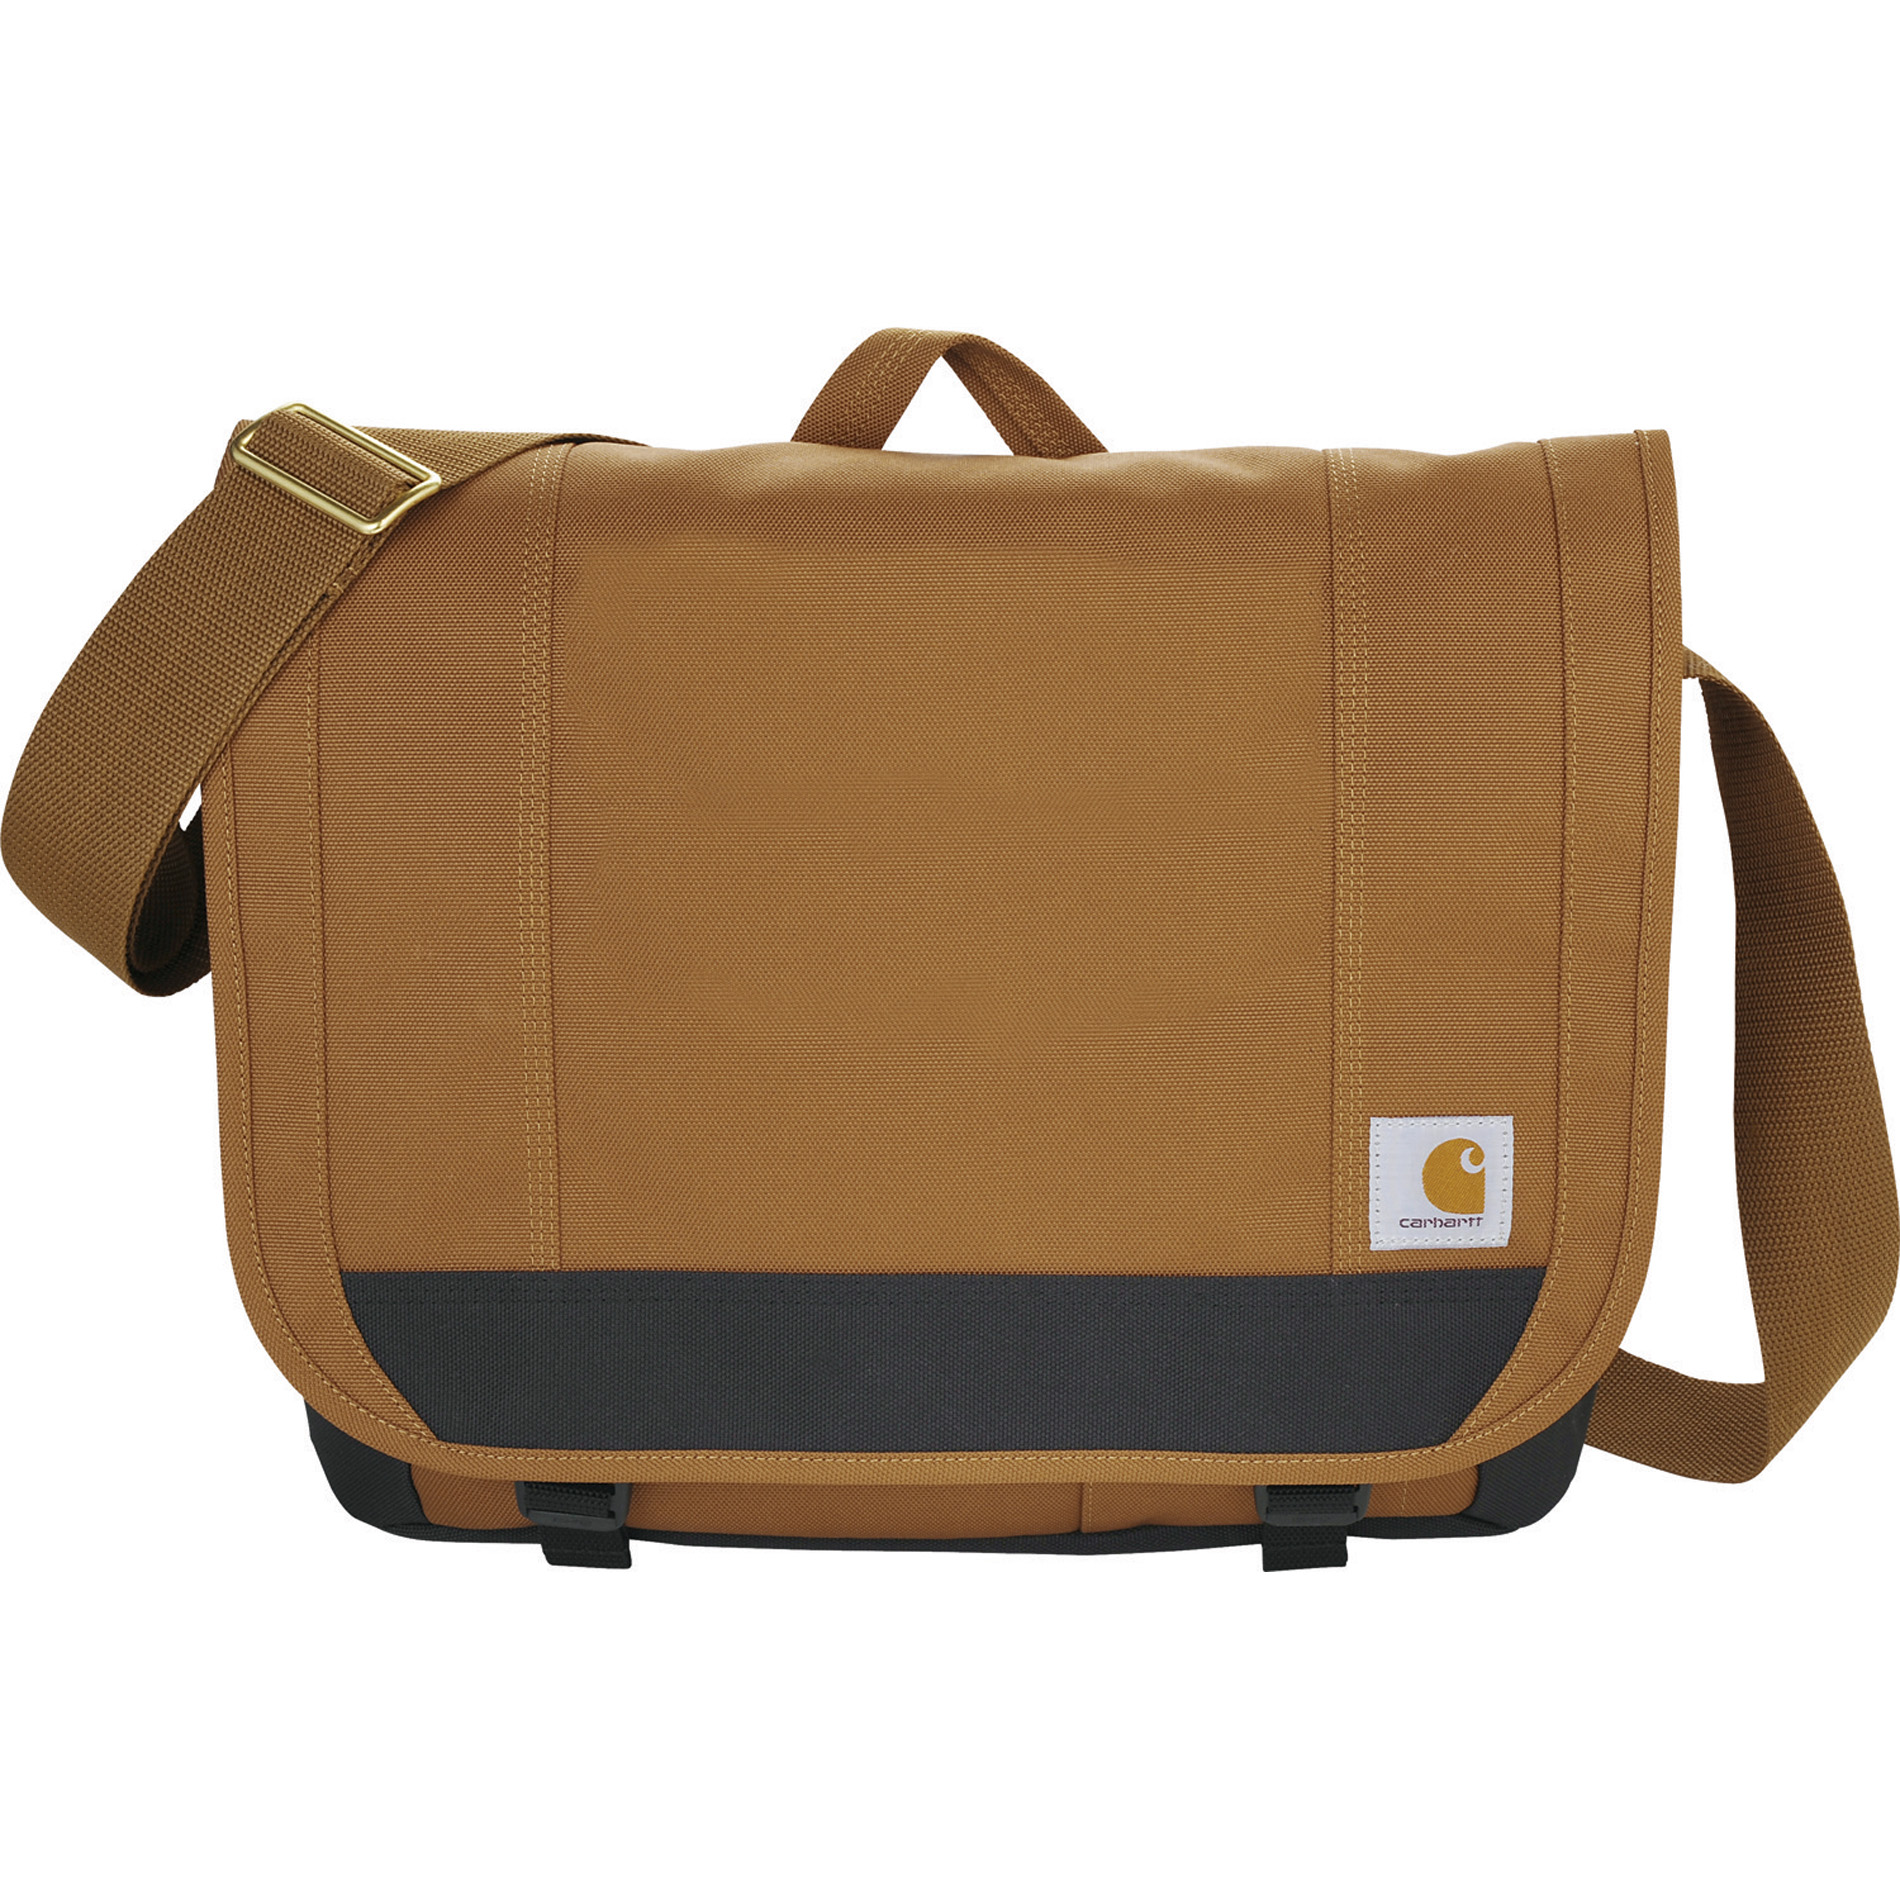 Carhartt 1889 60 Signature 17 Computer Messenger Bag